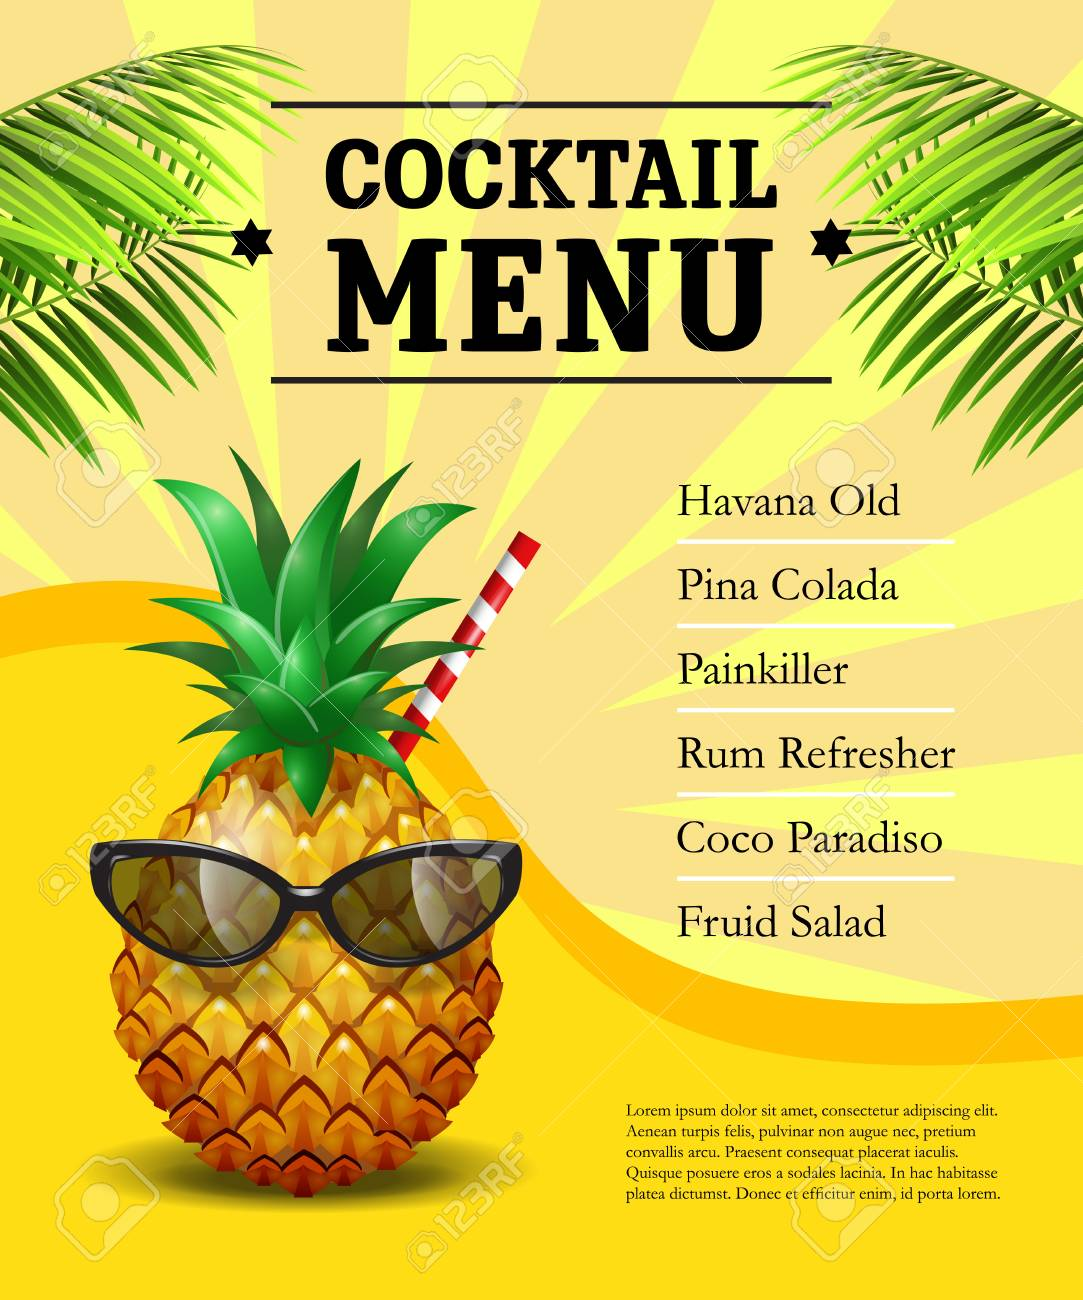 Cocktail Menu Poster Pineapple In Sunglasses And Drinking Straw On Yellow Background With Palm Leaves